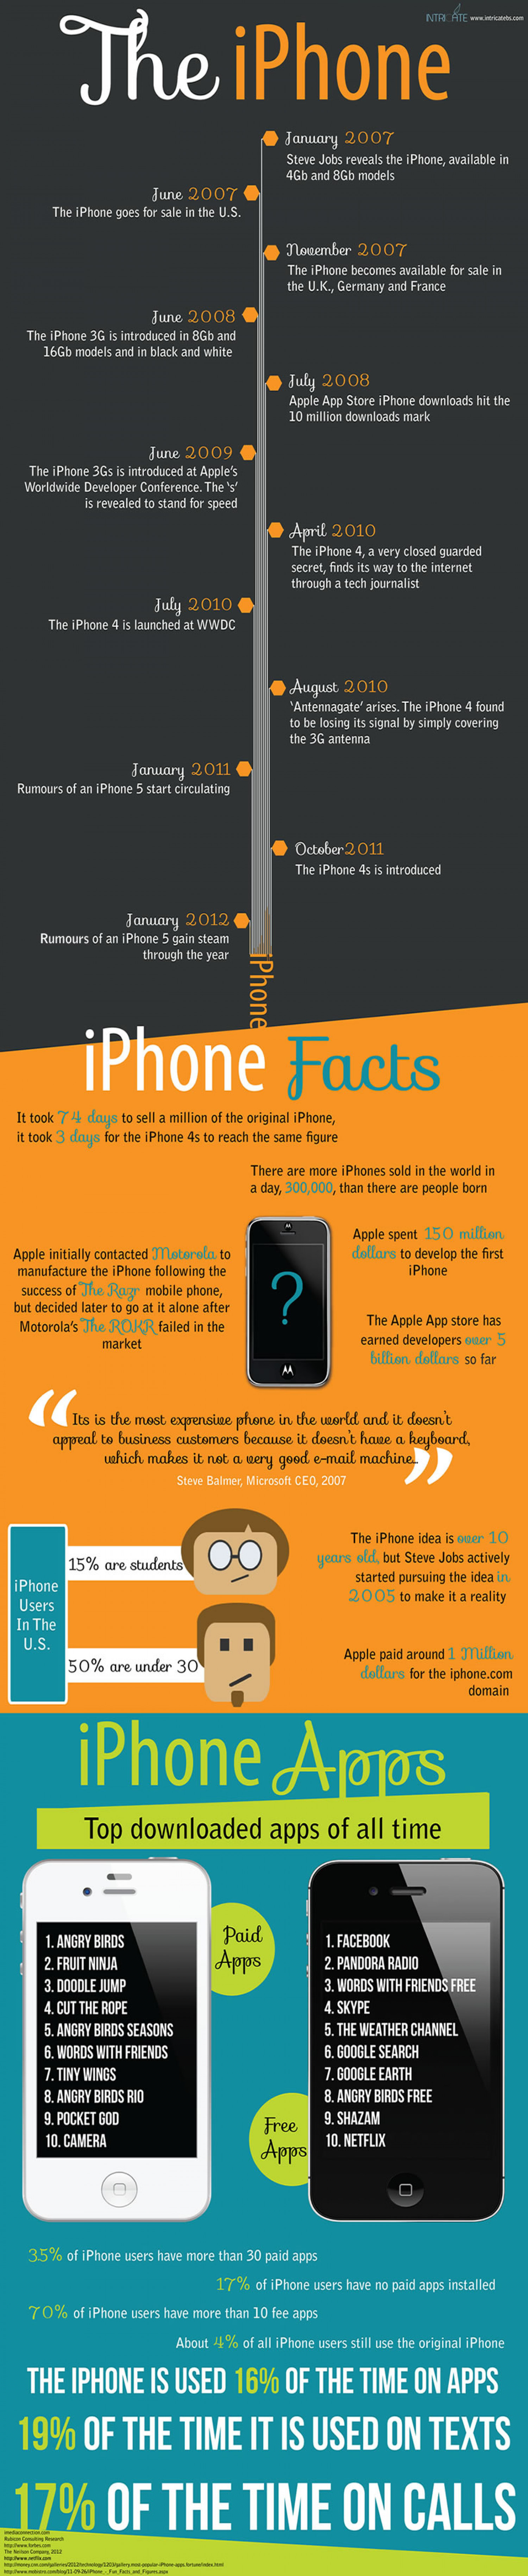 The iPhone: 5th Year Anniversary Infographic